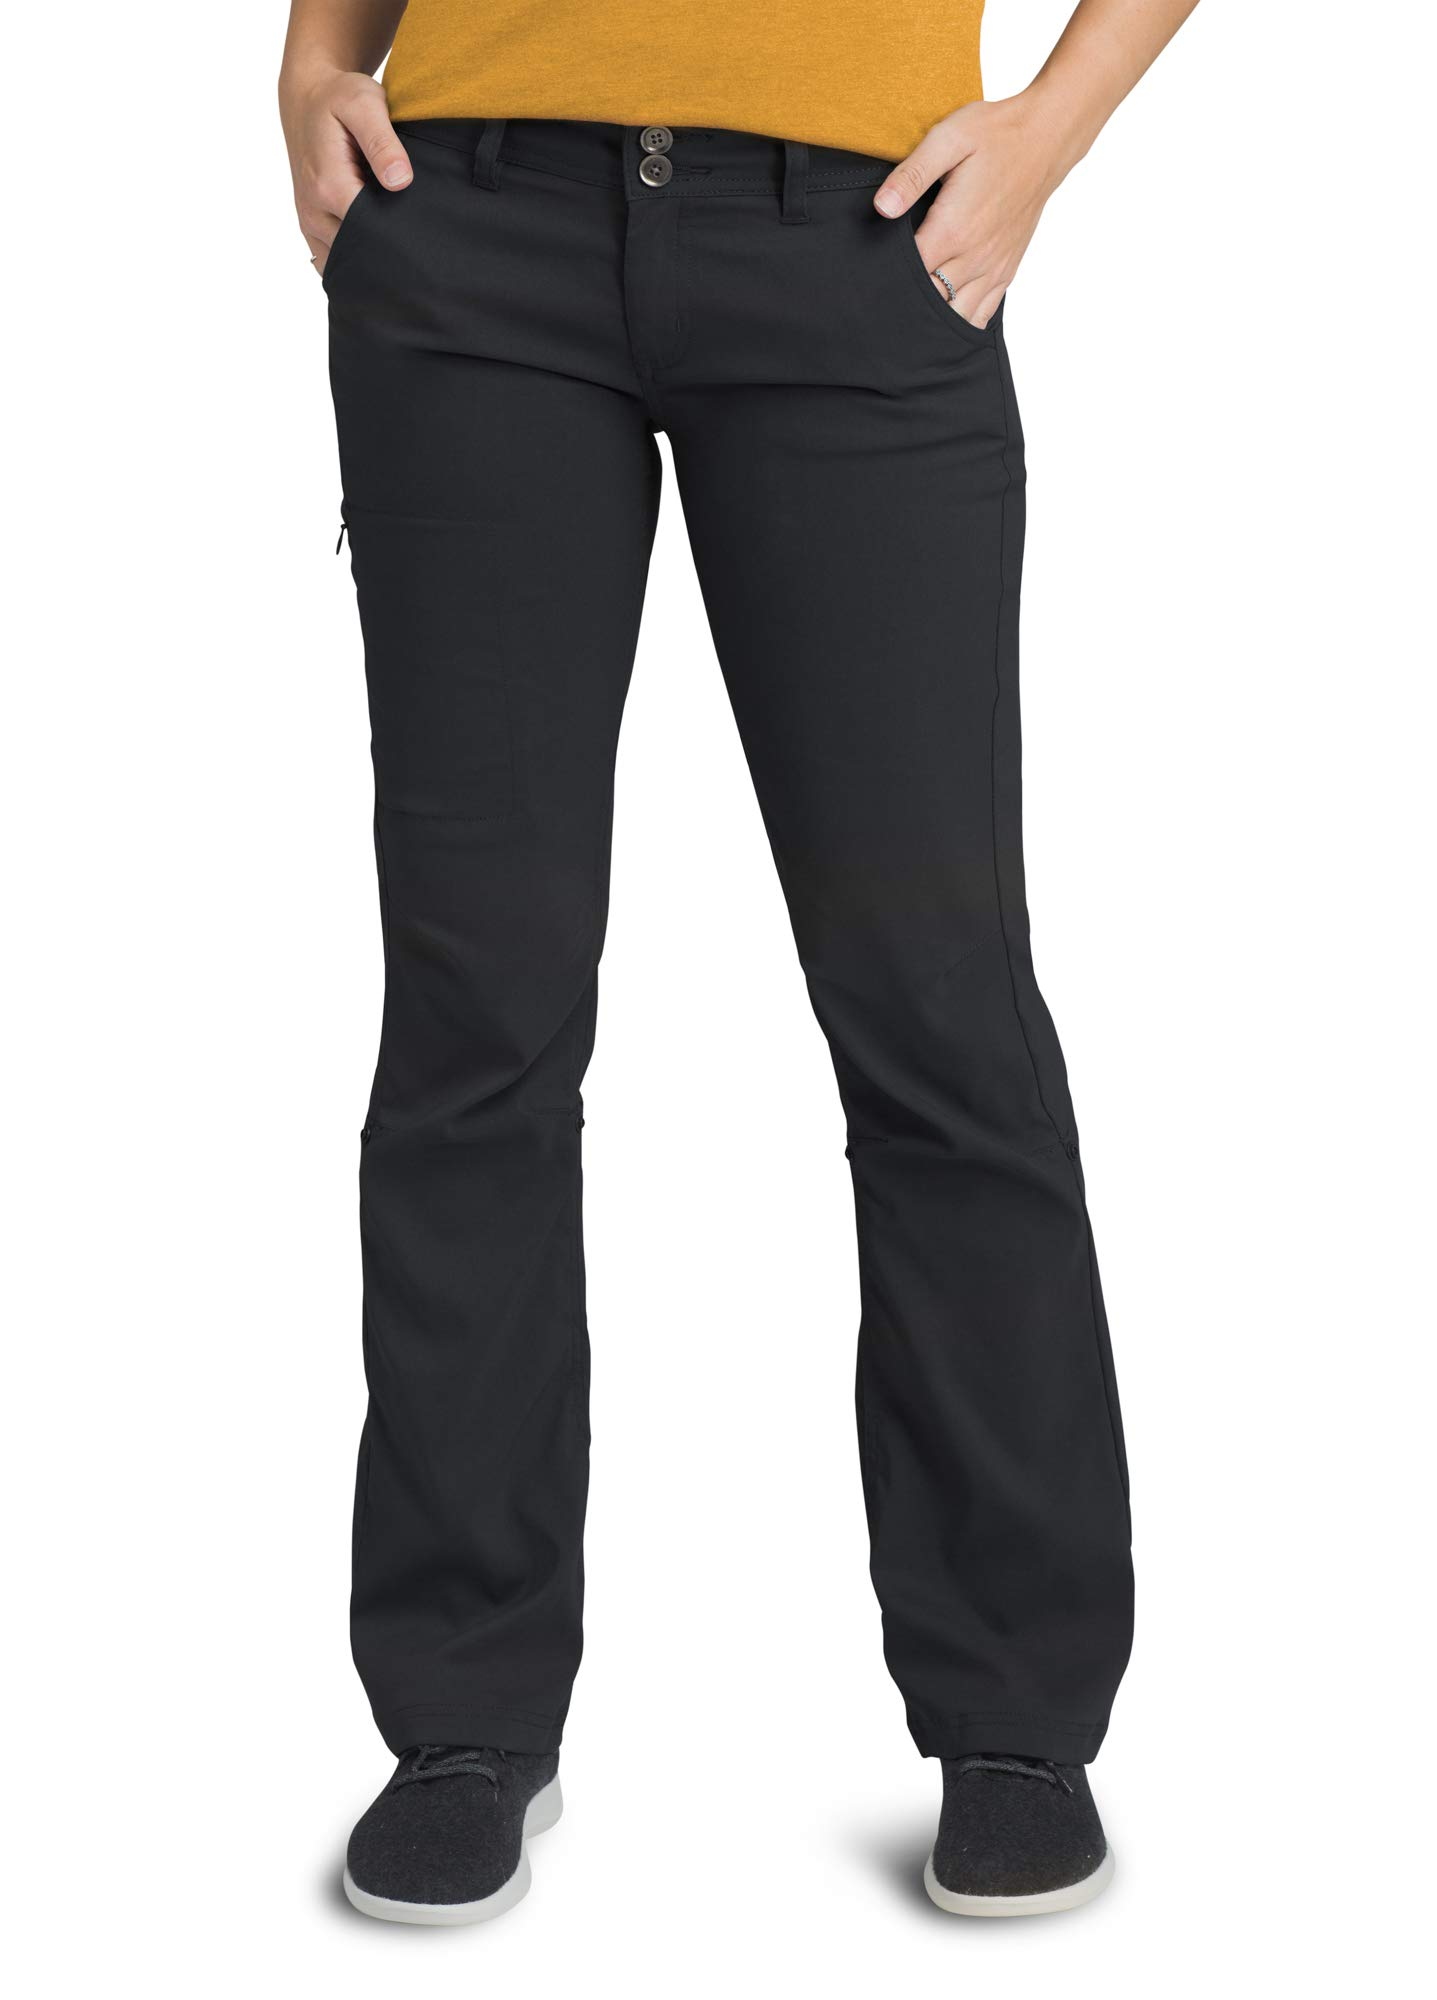 prAna - Women's Halle Roll-up, Water-Repellent Stretch Pants for Hiking and Everyday Wear, Regular Inseam, Black, 4 by prAna